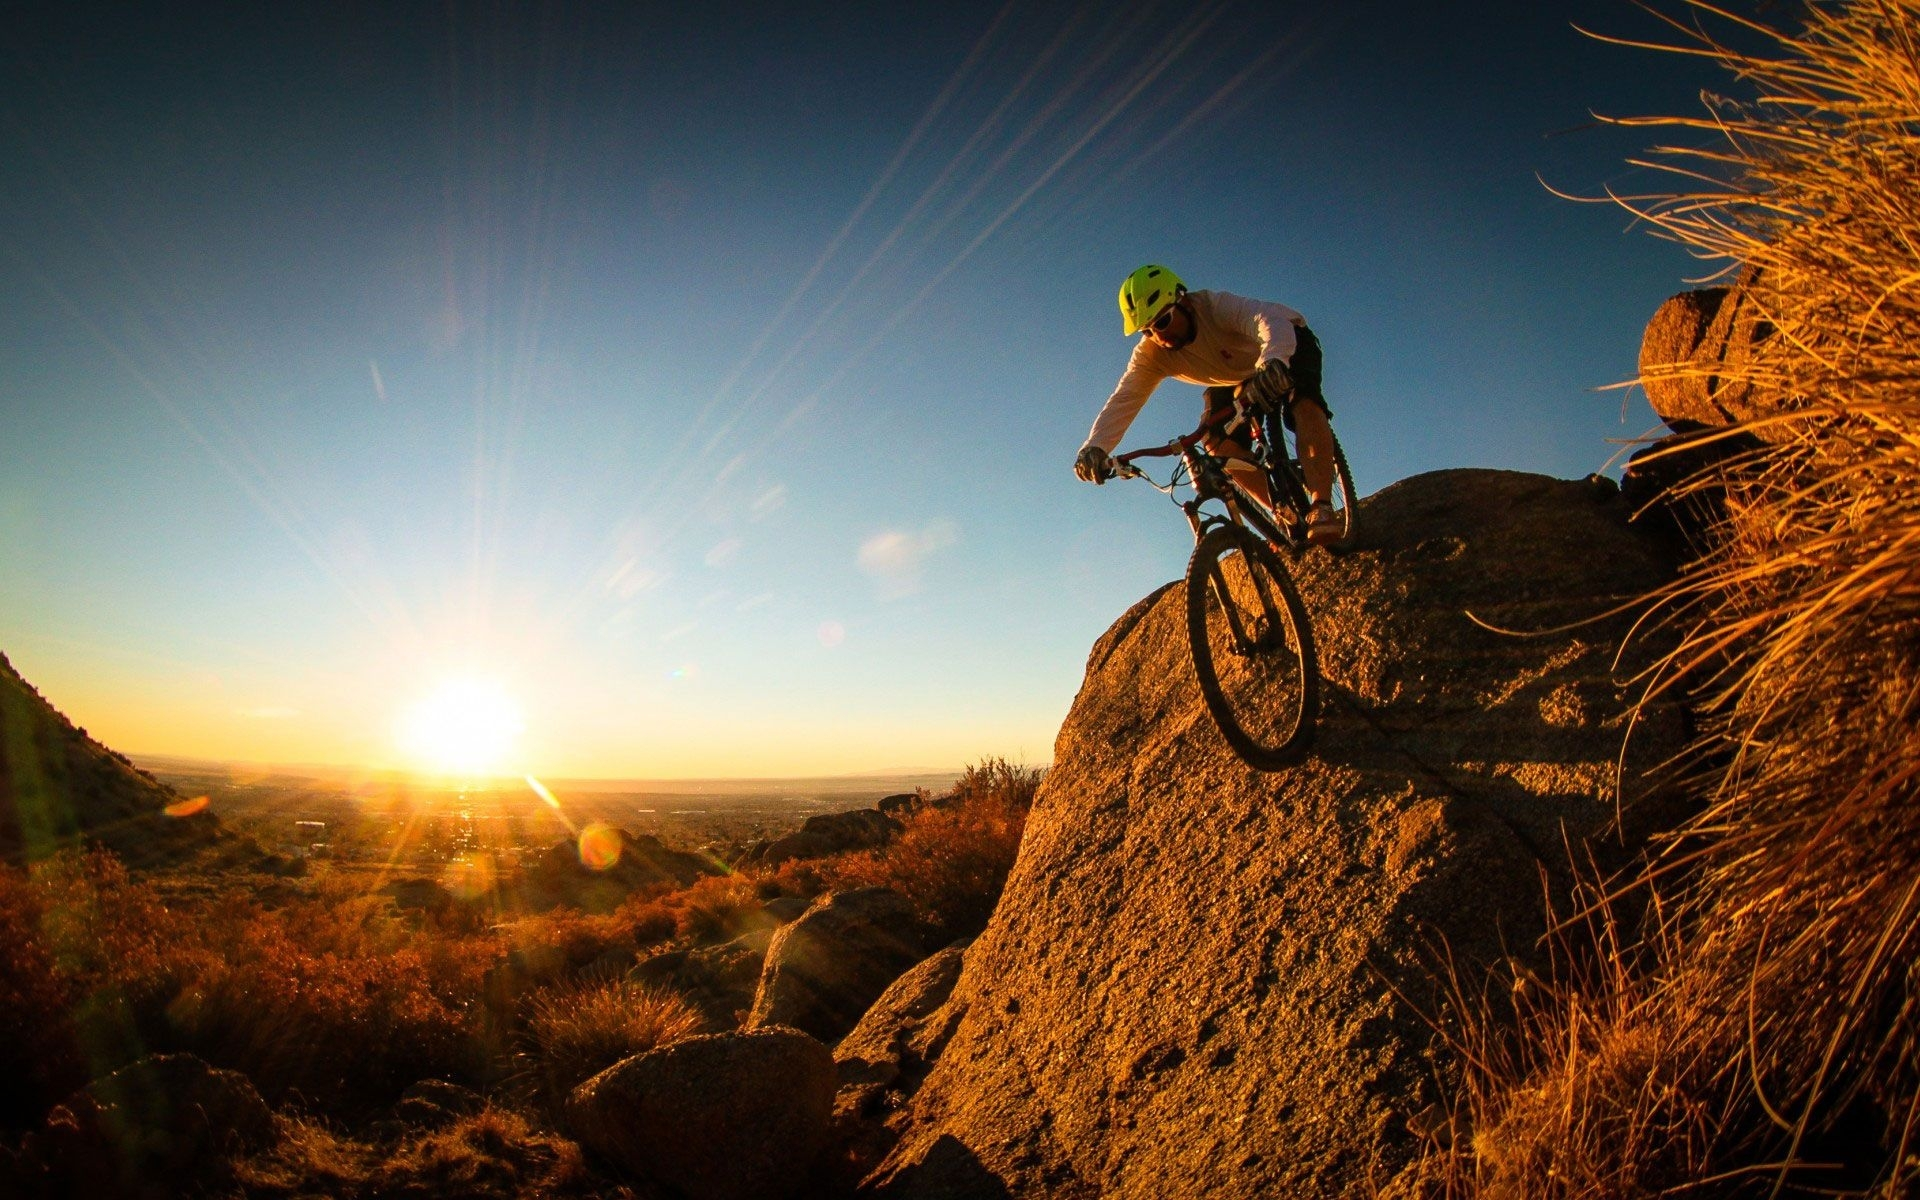 10 New Hd Mountain Biking Wallpaper FULL HD 1920×1080 For PC Desktop